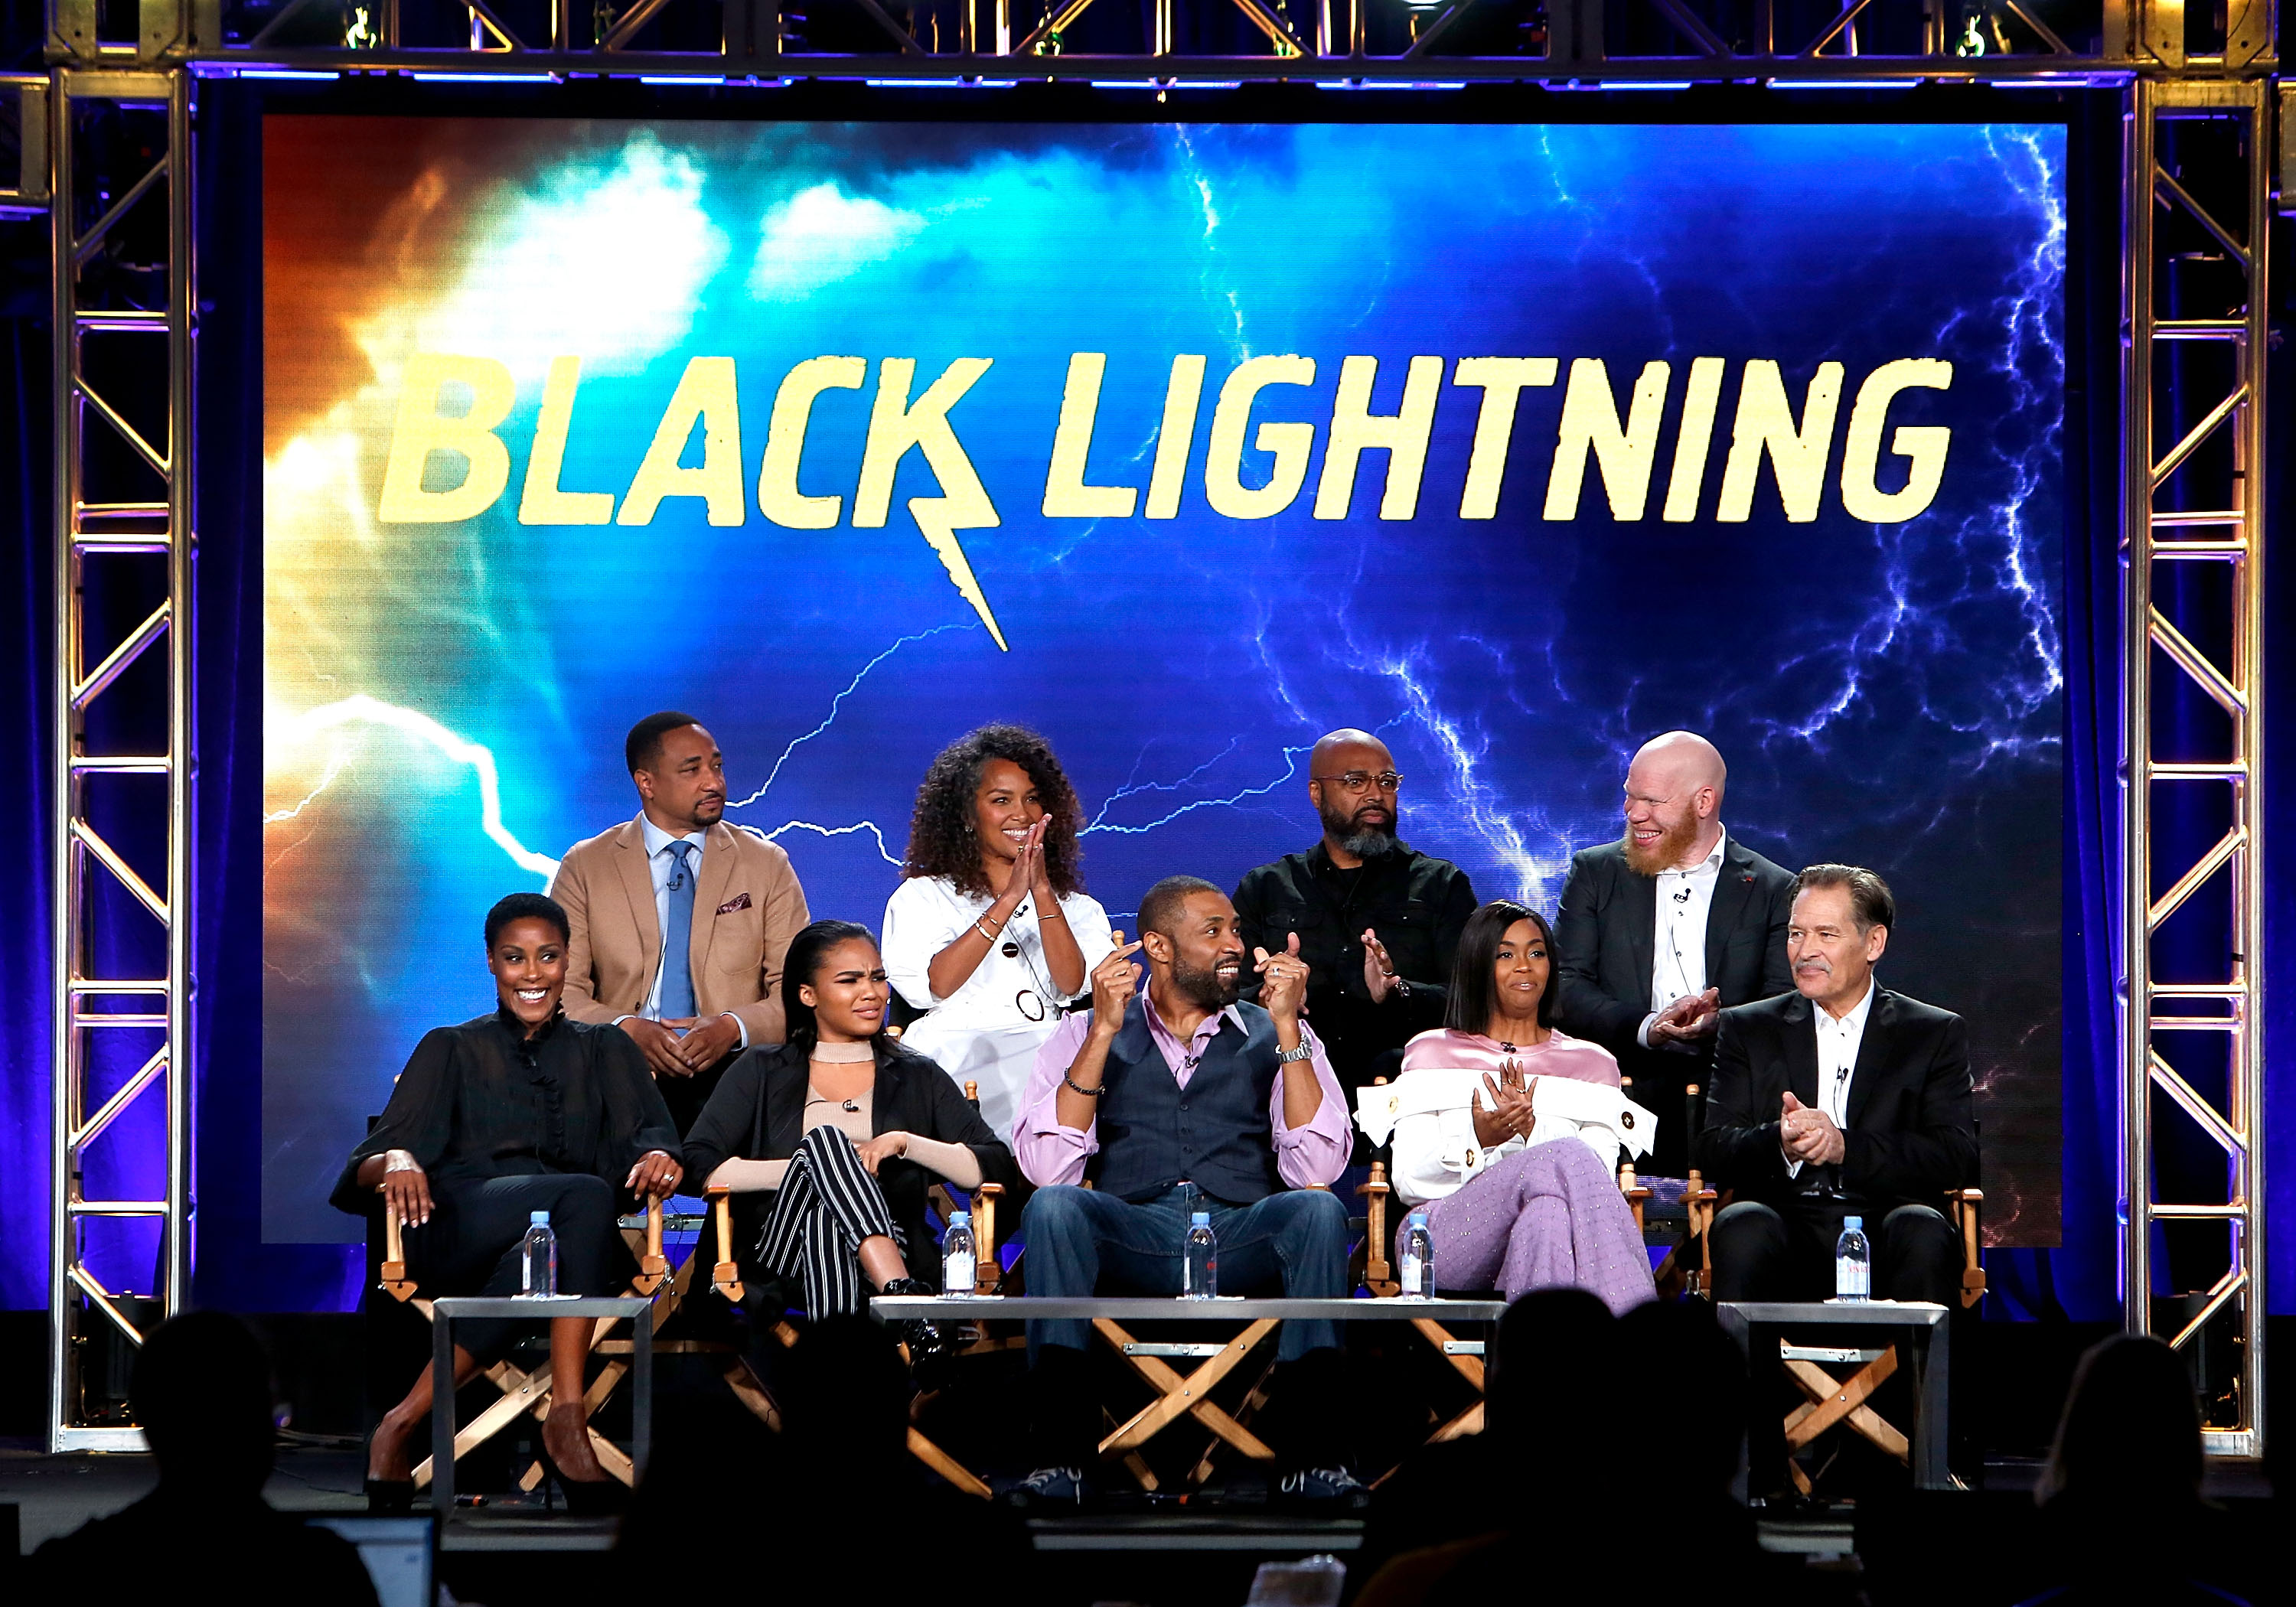 New Superhero Series 'Black Lightning' Ranks As The Highest Rated Premiere In Two Years On The CW